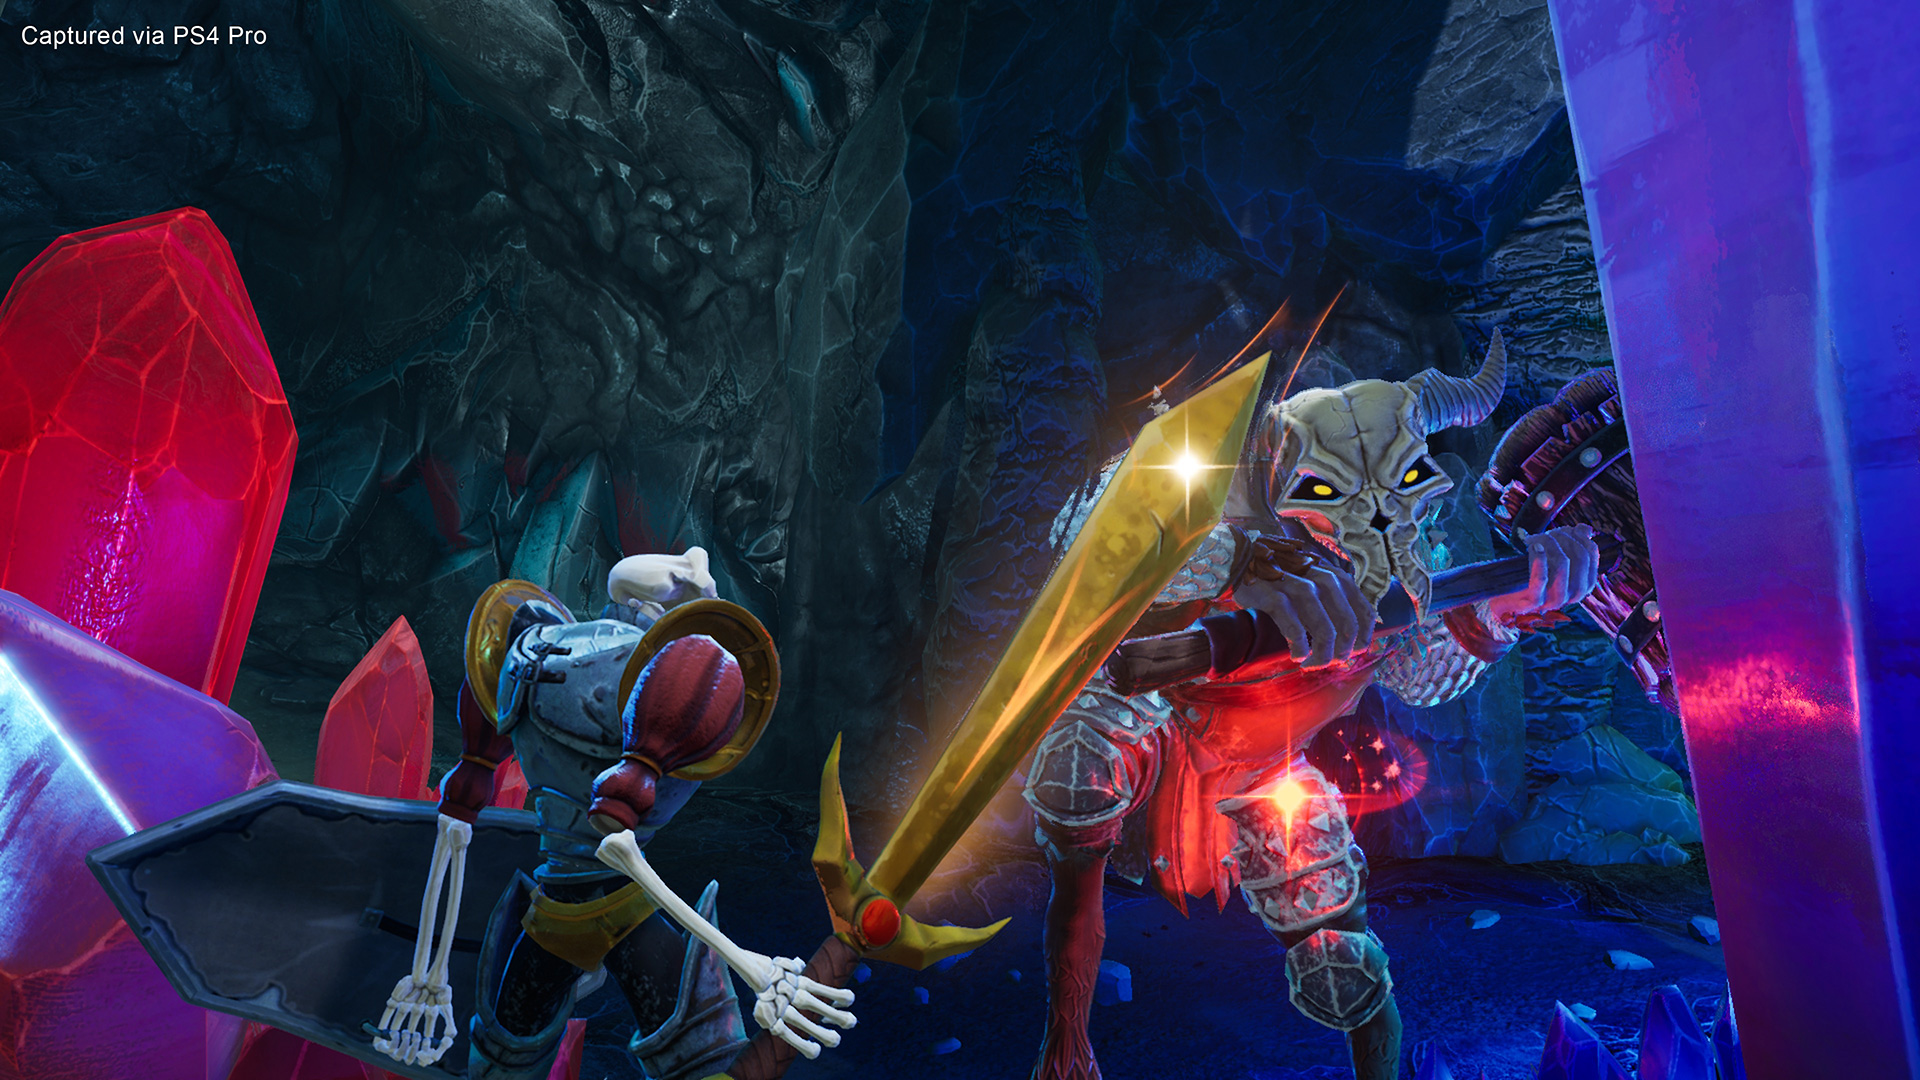 A screenshot from the MediEvil PS4 remake